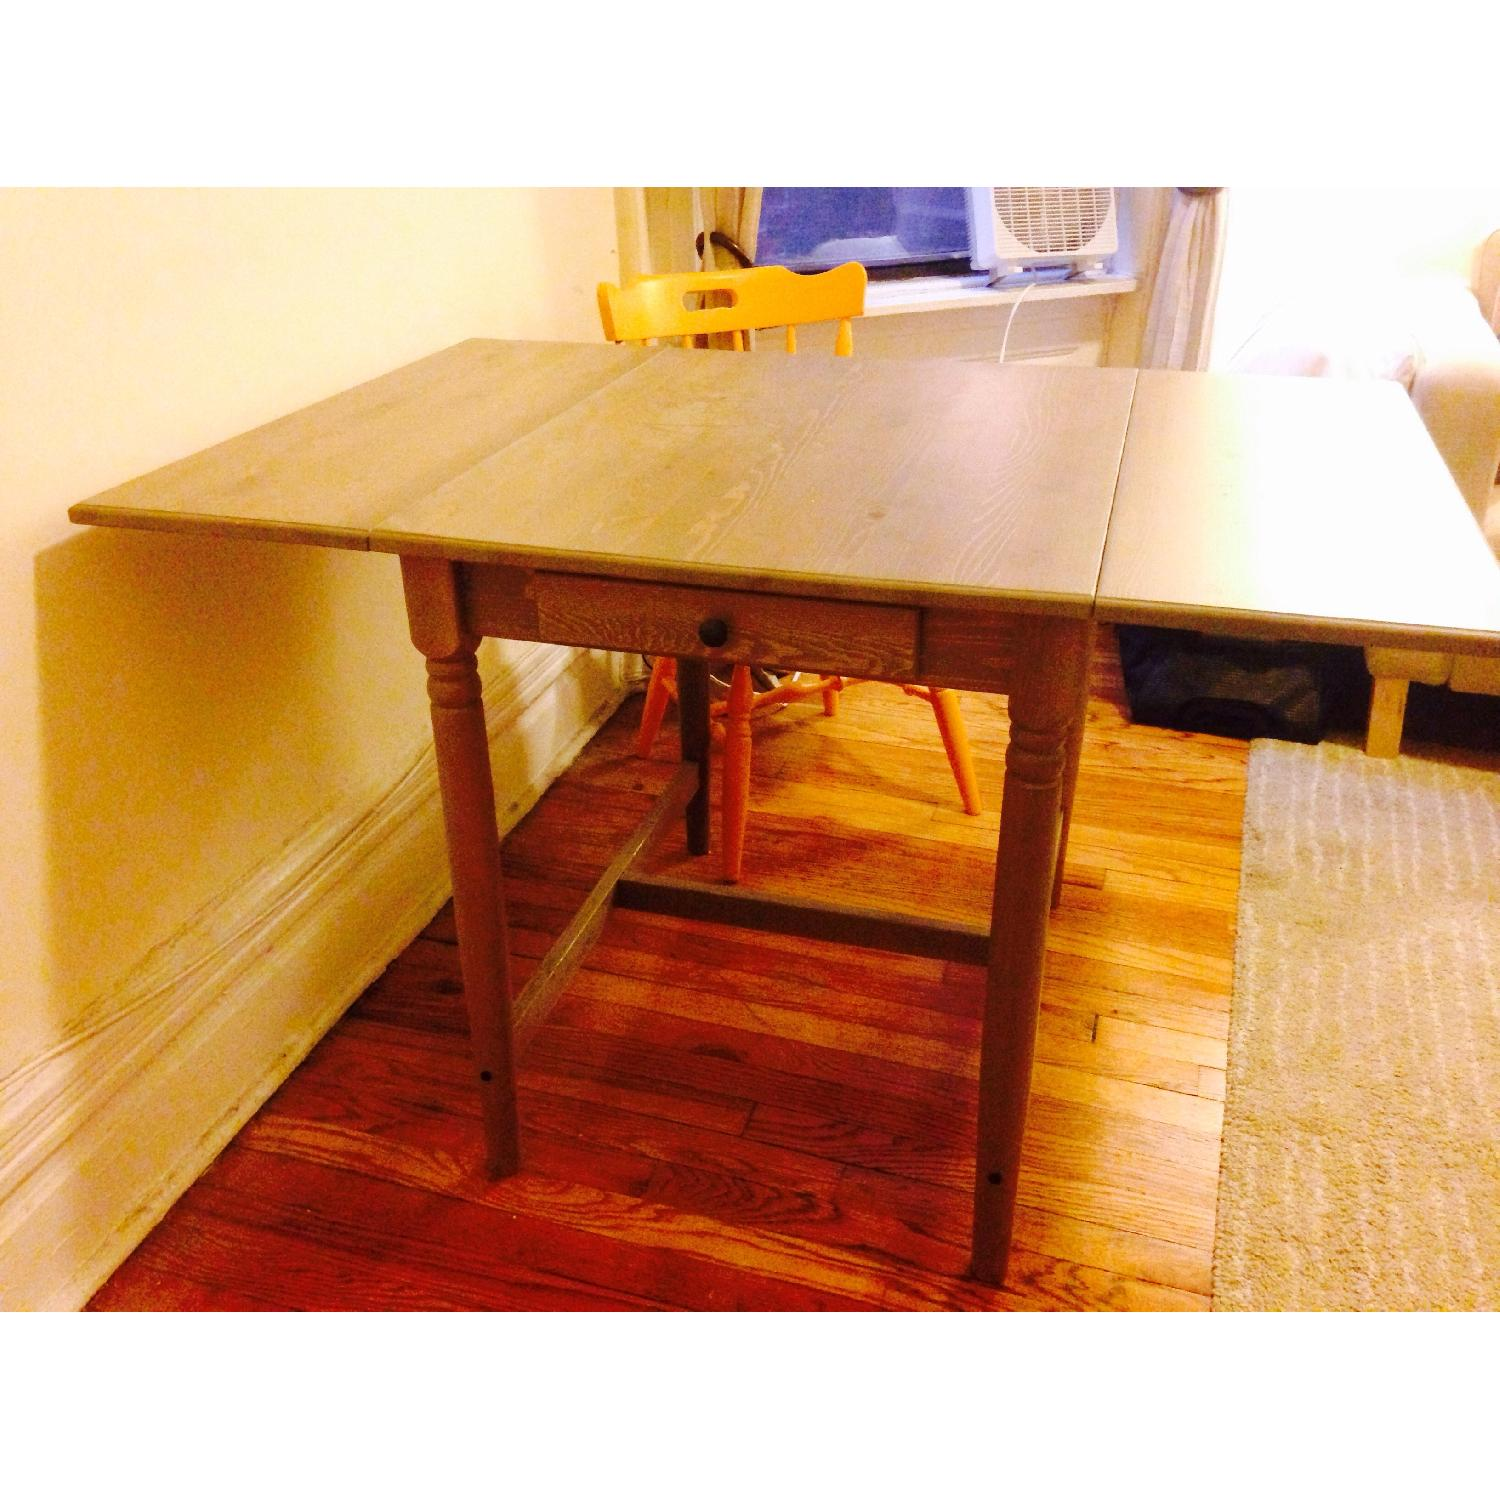 Ikea Drop-Leaf Dining Table w/ Antique 2 Chairs - image-2